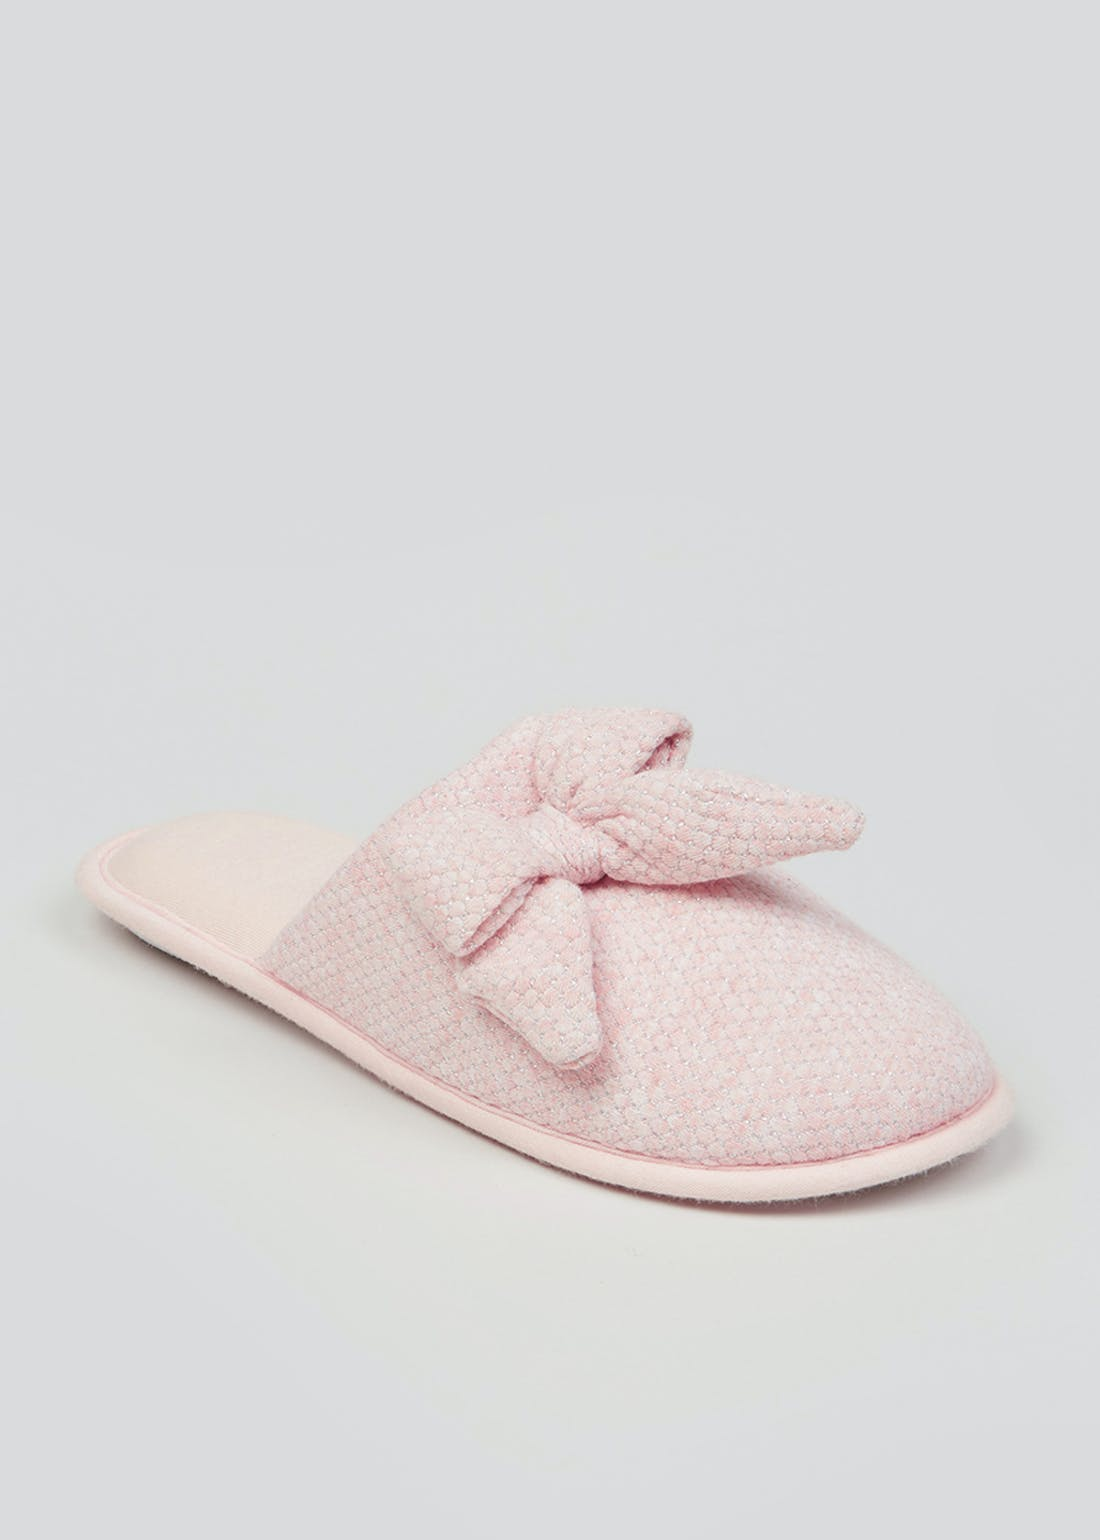 Pink Bow Mule Slippers